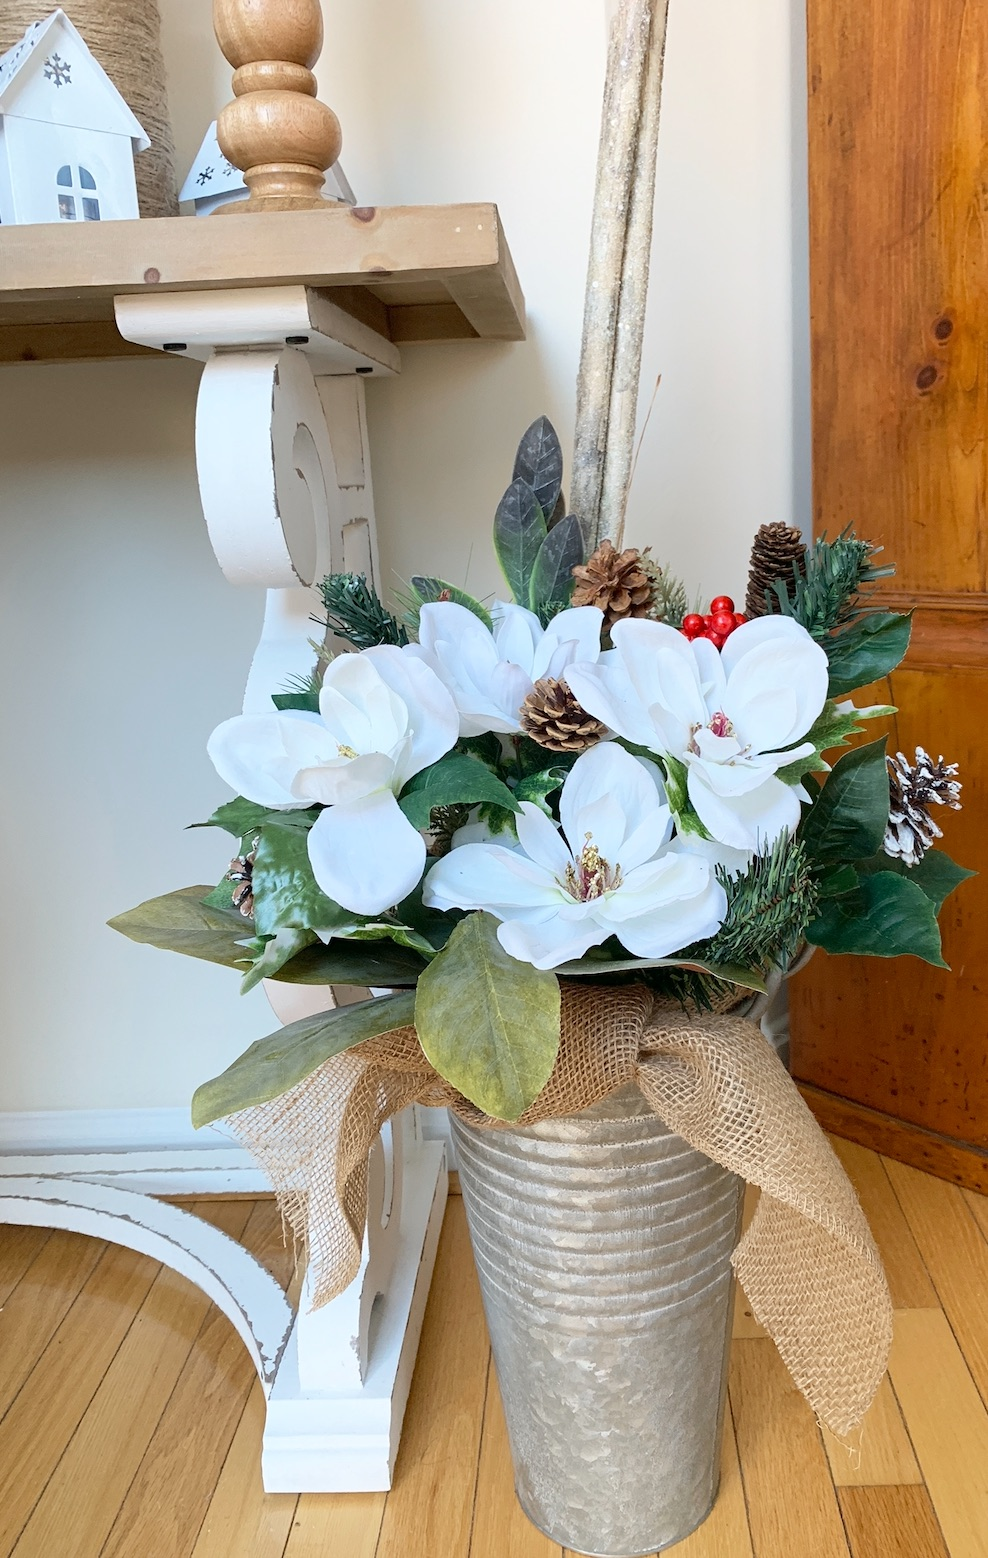 Decorate French Floral Buckets for Christmas Entryway Galvanized Floral Bucket Decor #DIY #DIYChristmasDecor #ChristmasDecor #ChristmasEntrywayDecor #DIYFrenchFloralBucketDecor #FrenchFloralBucketDecor #GalvanizedFloralBucketDecor #DecorTutorial